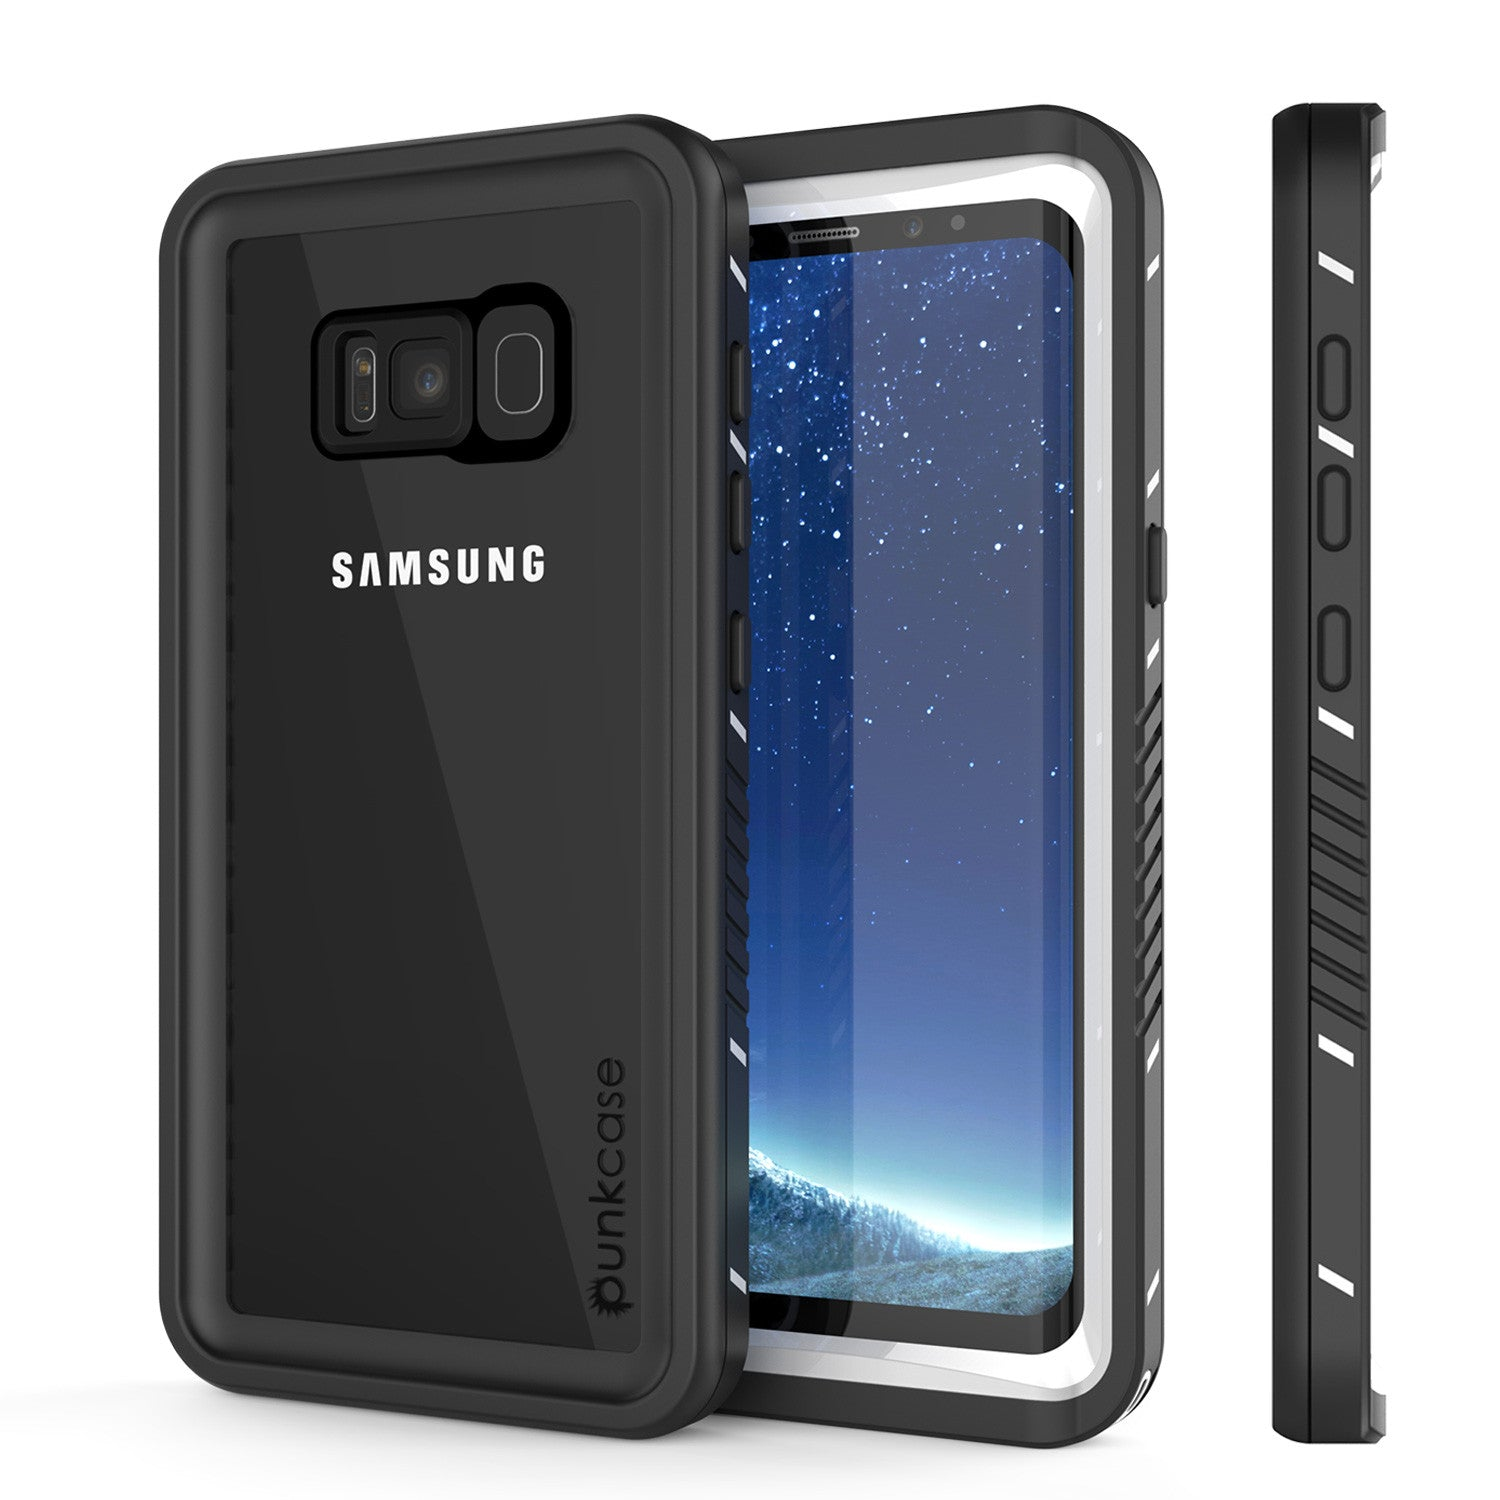 Galaxy S8 Waterproof Case, Punkcase [Extreme Series] [Slim Fit] [IP68 Certified] [Shockproof] [Snowproof] [Dirproof] Armor Cover [White]